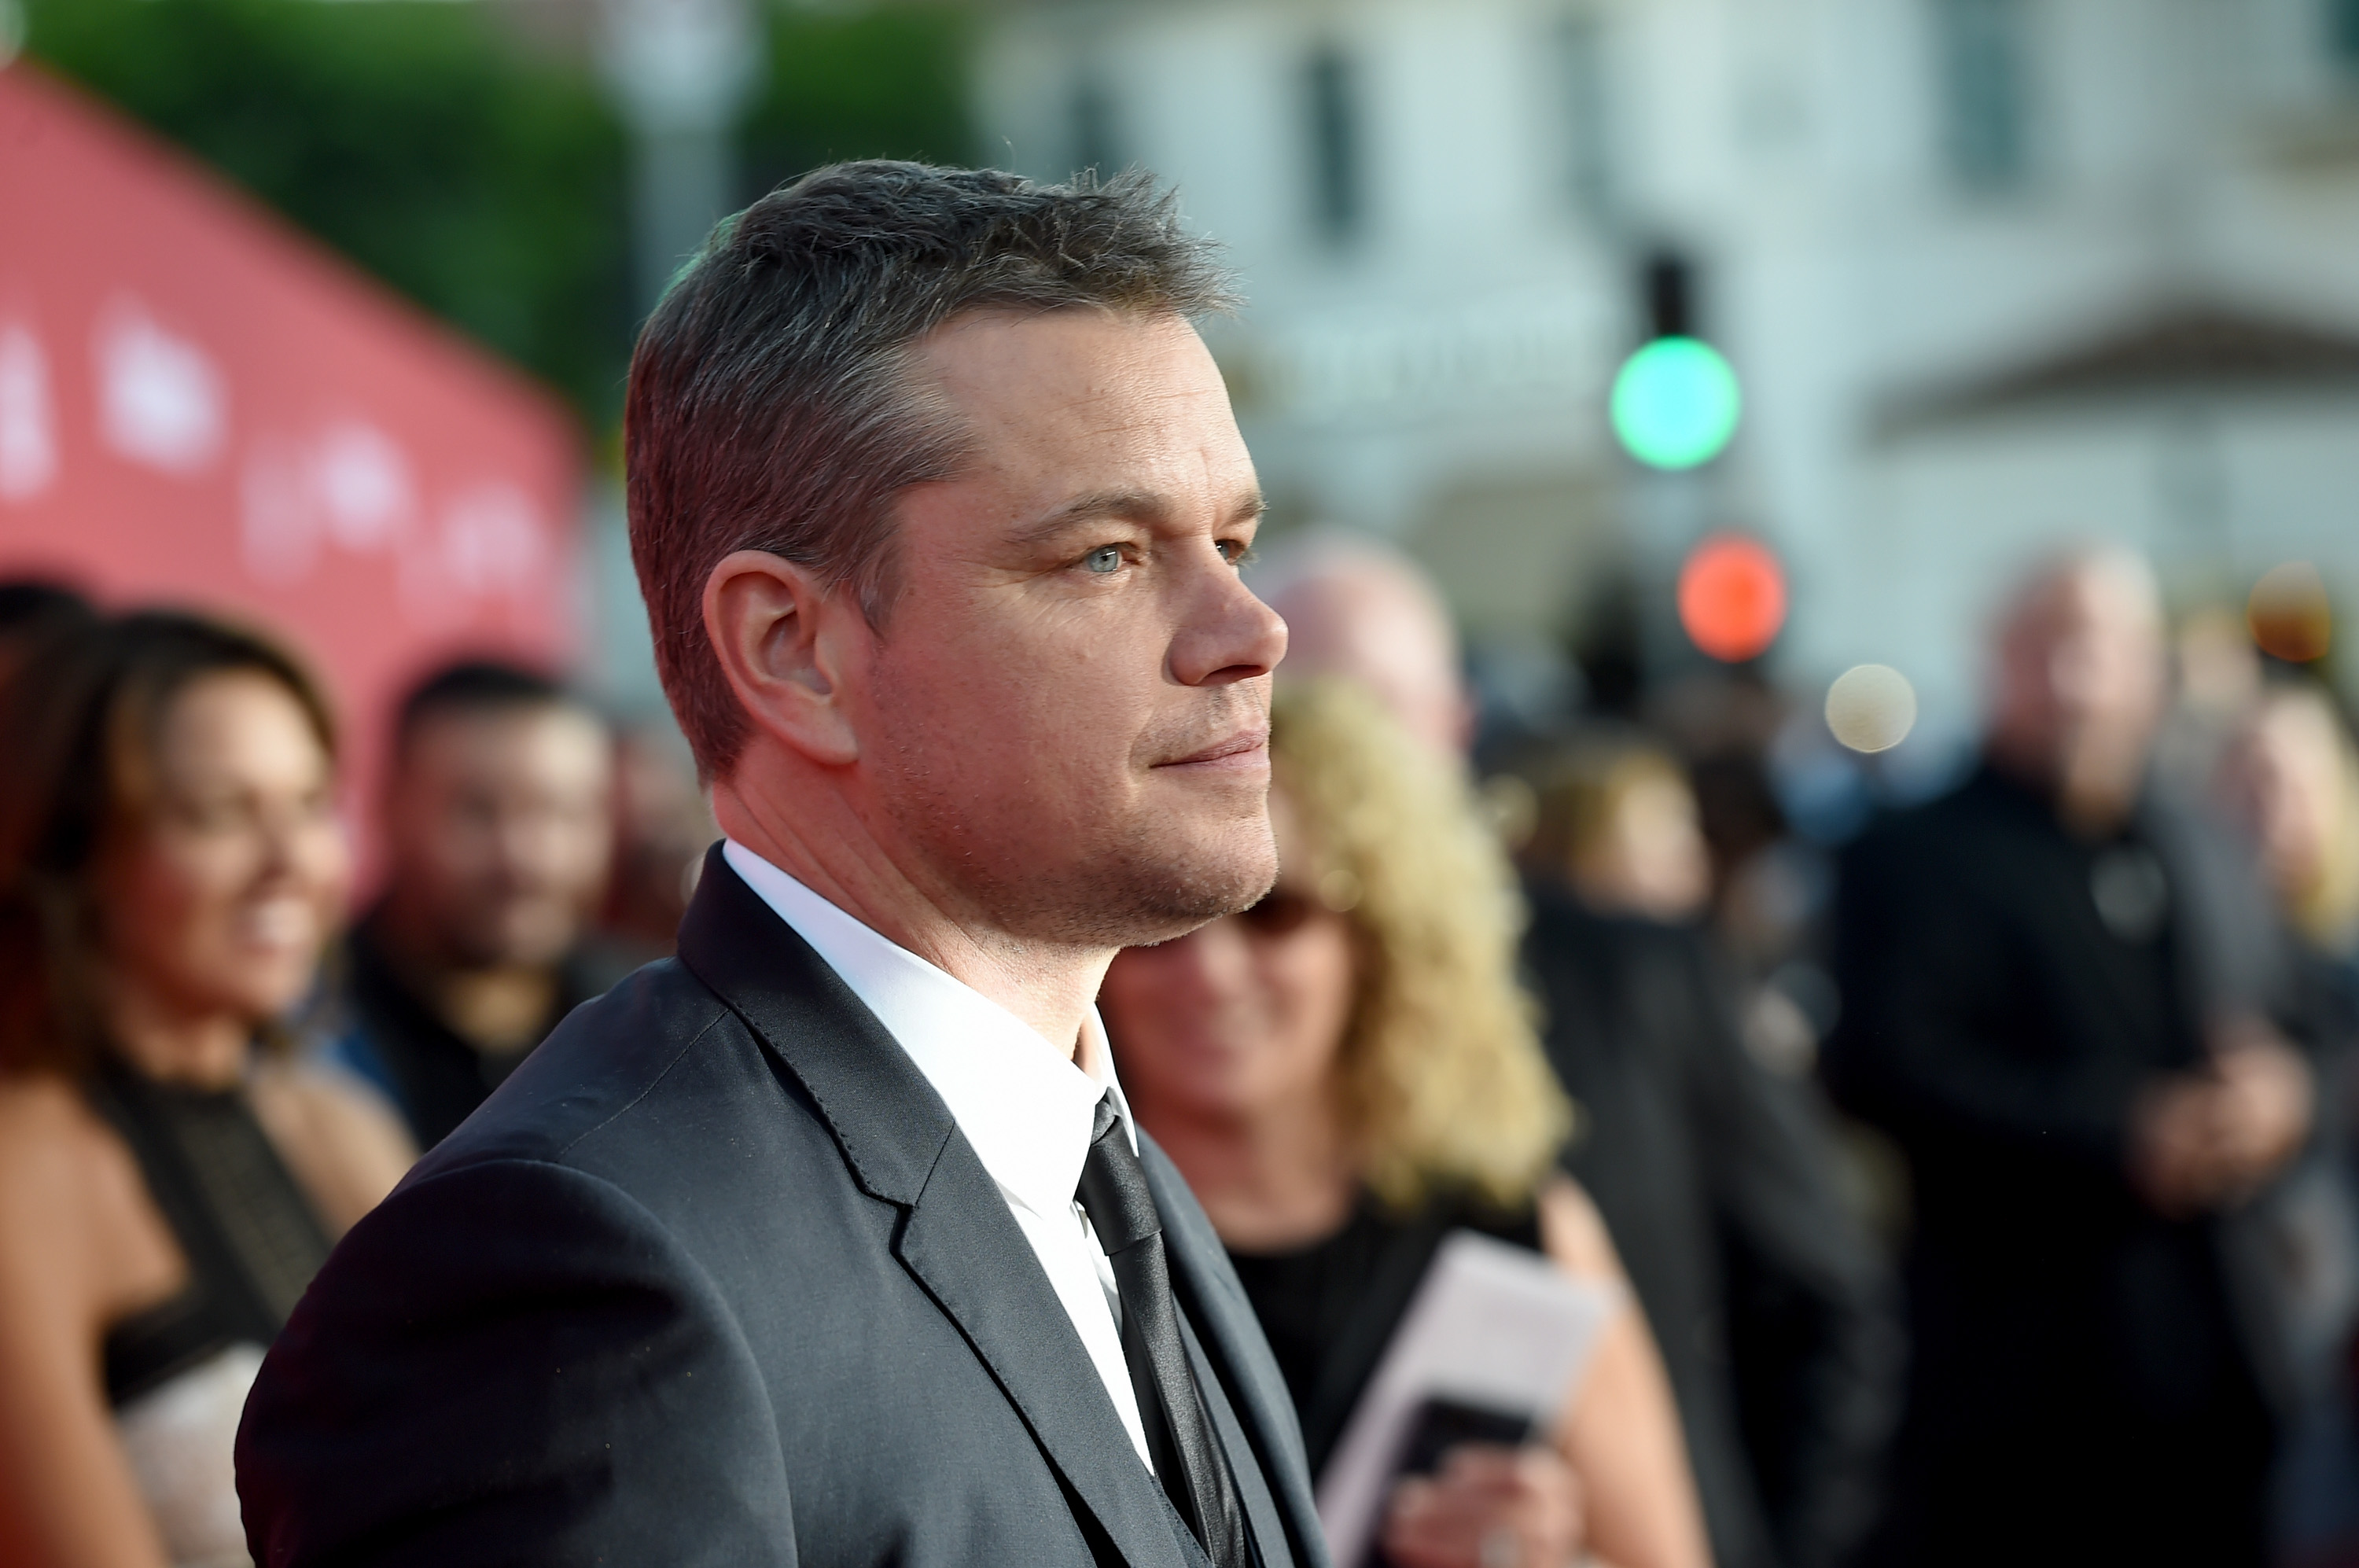 RIP Matt Damon, who Terry Gilliam says has been 'beaten to death' by internet mobs